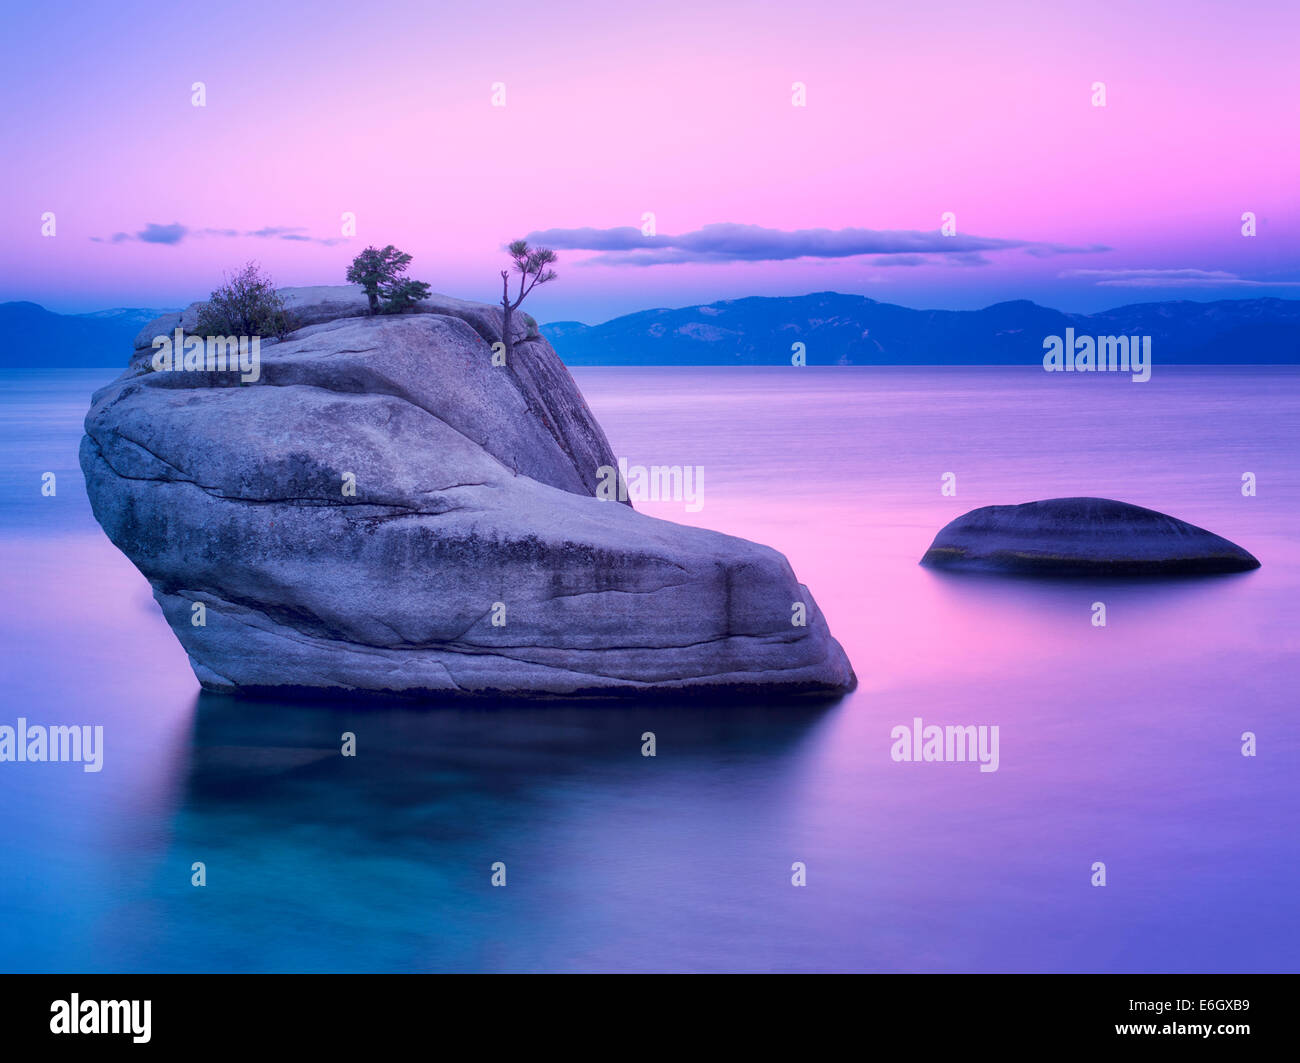 Bonsai Rock at sunrise. Lake Tahoe, Nevada - Stock Image